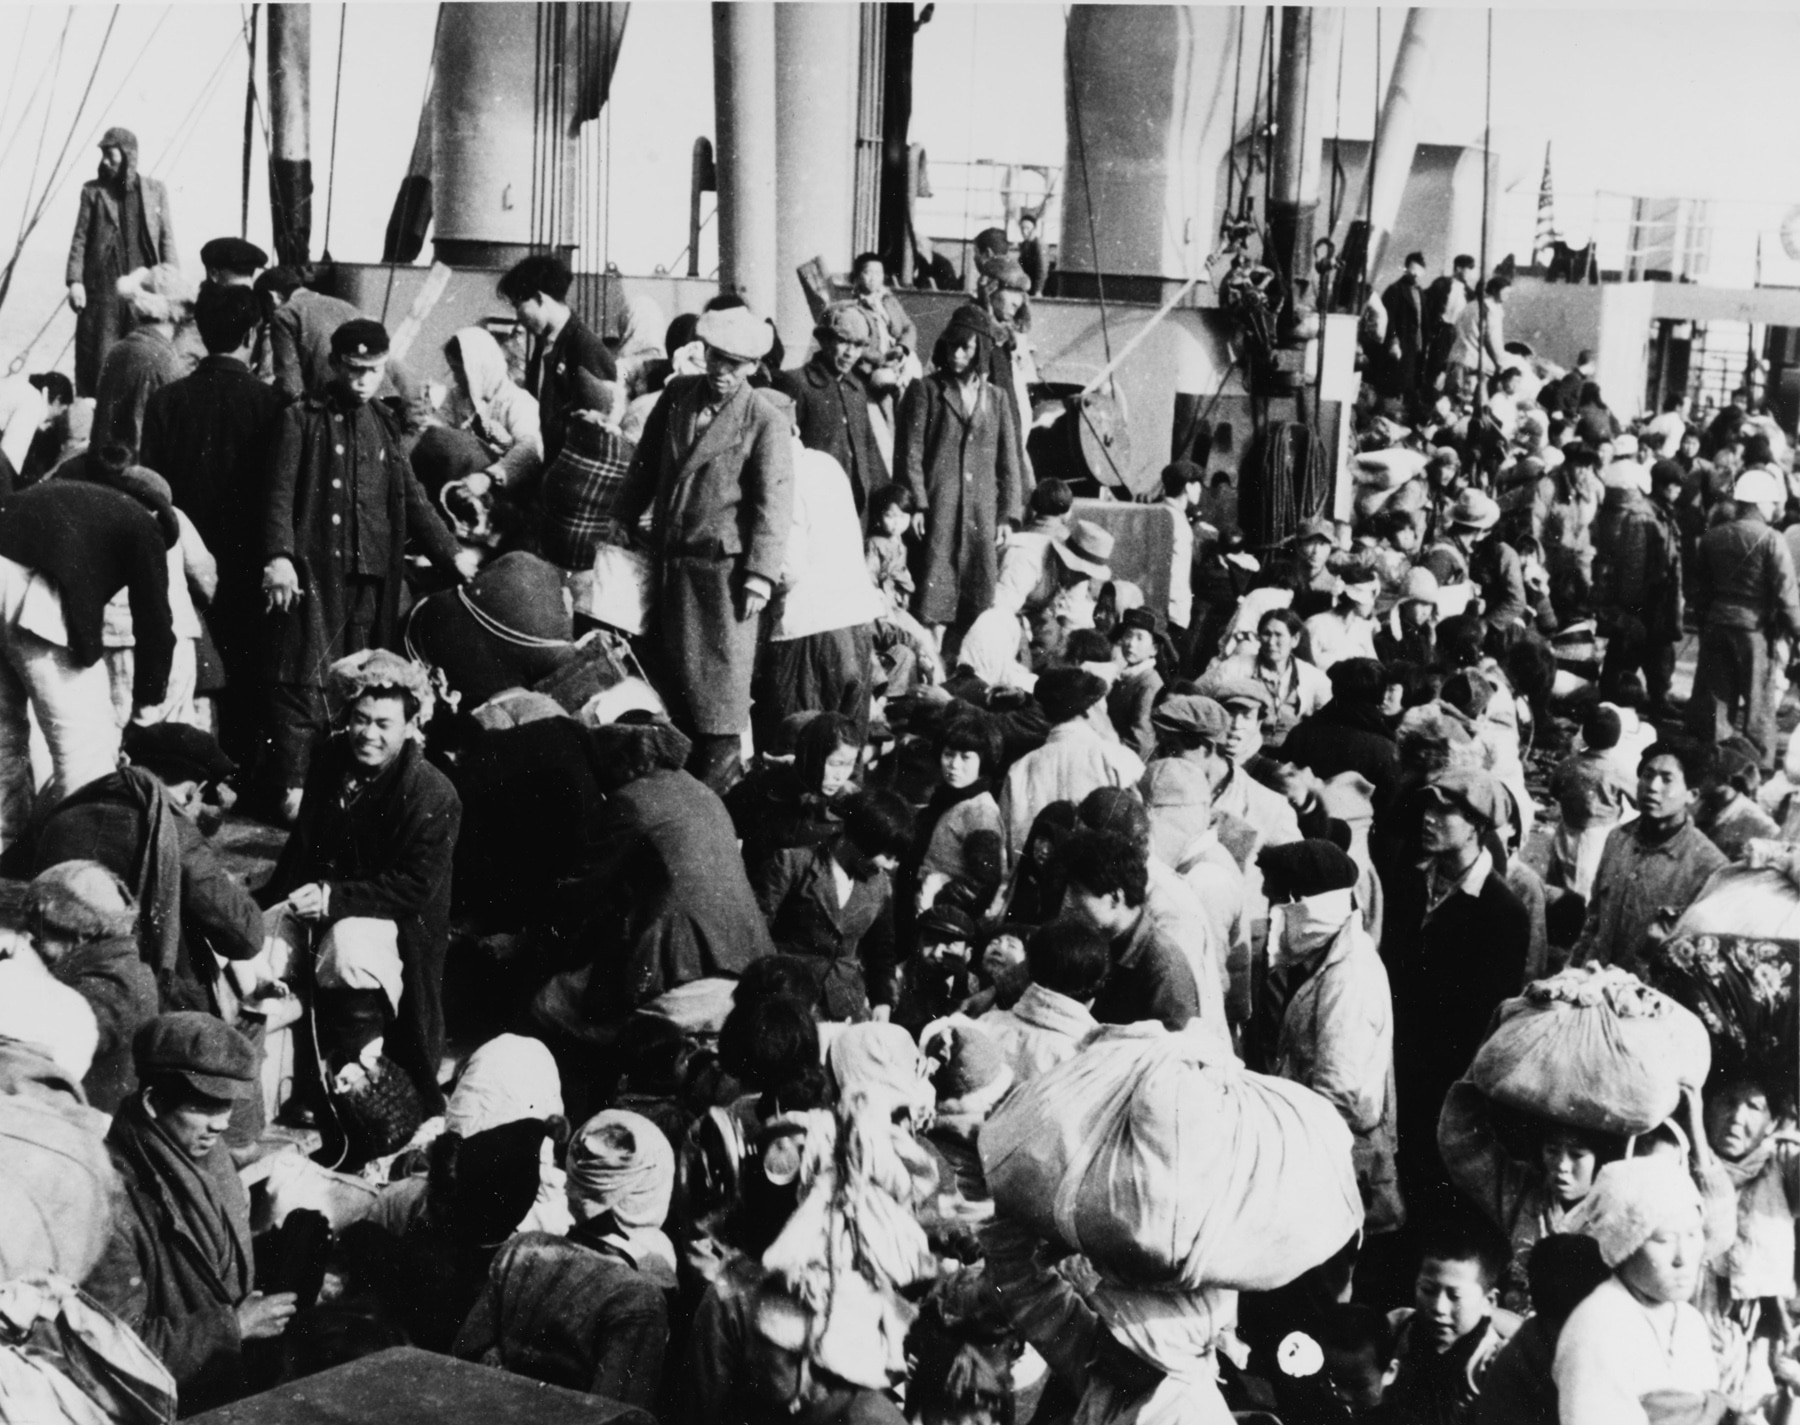 Refugees boarding a ship (U.S. Navy)